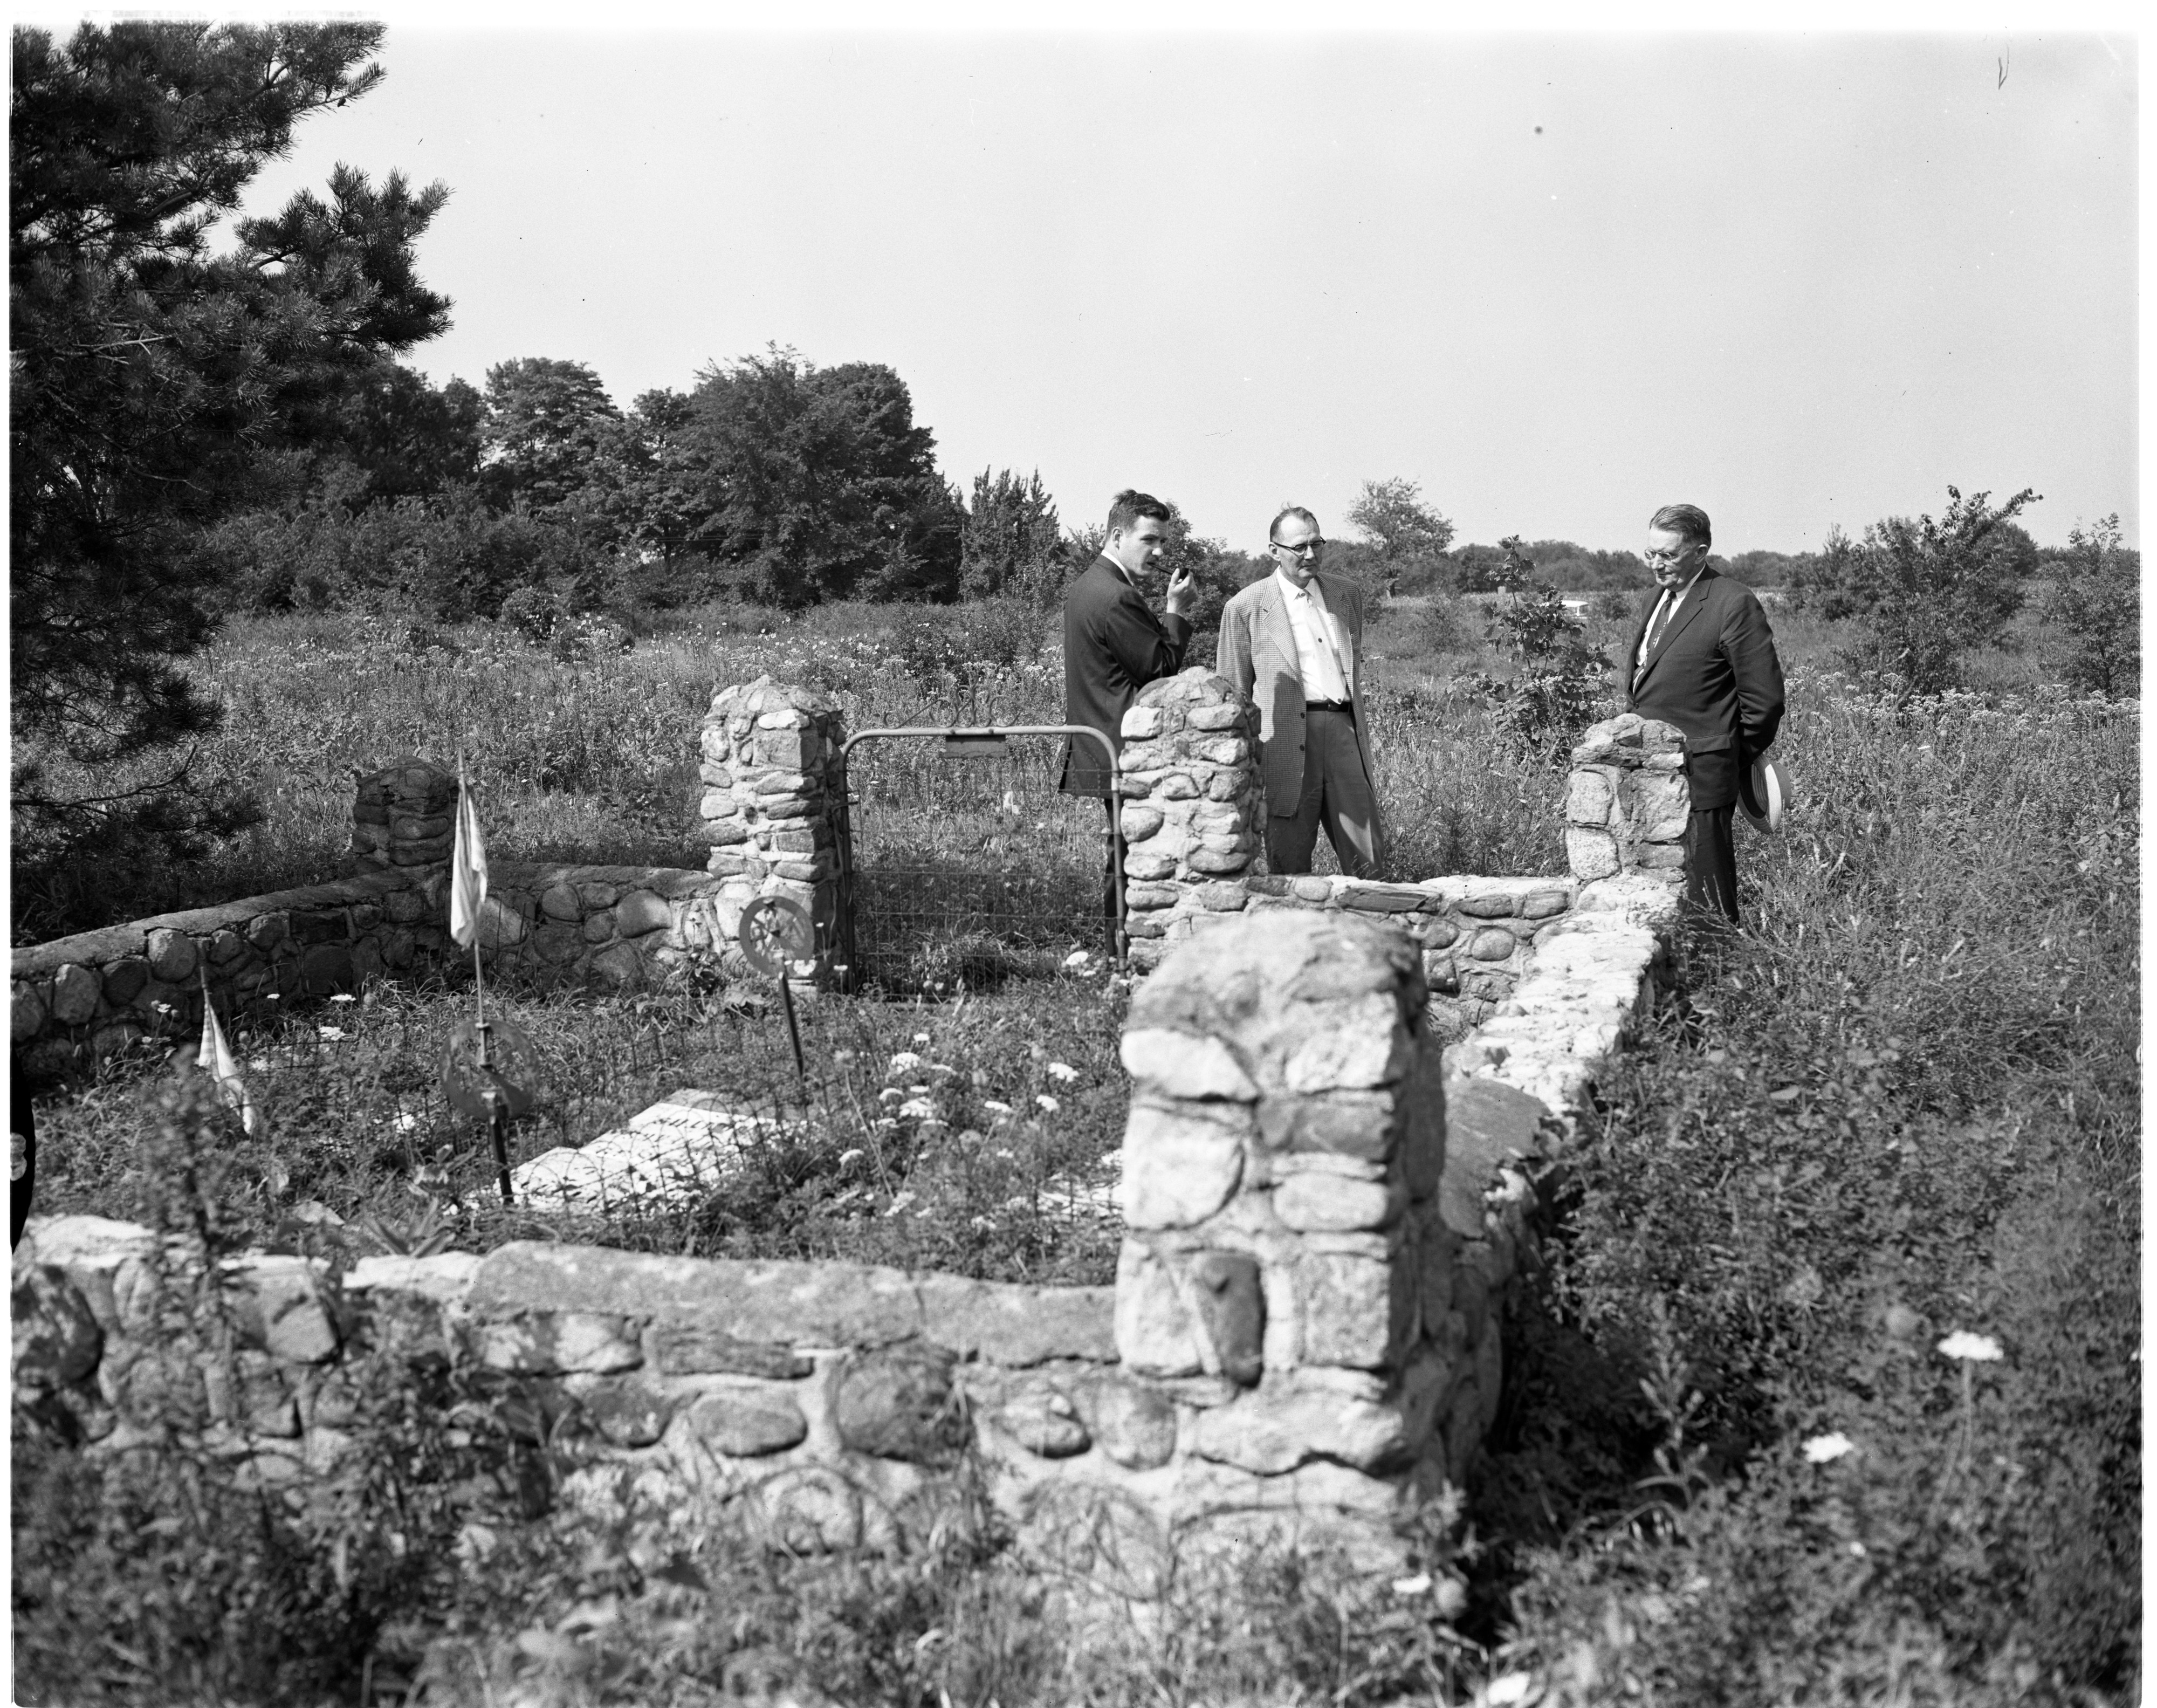 Inspecting Historical Cemetery, August 1956 image